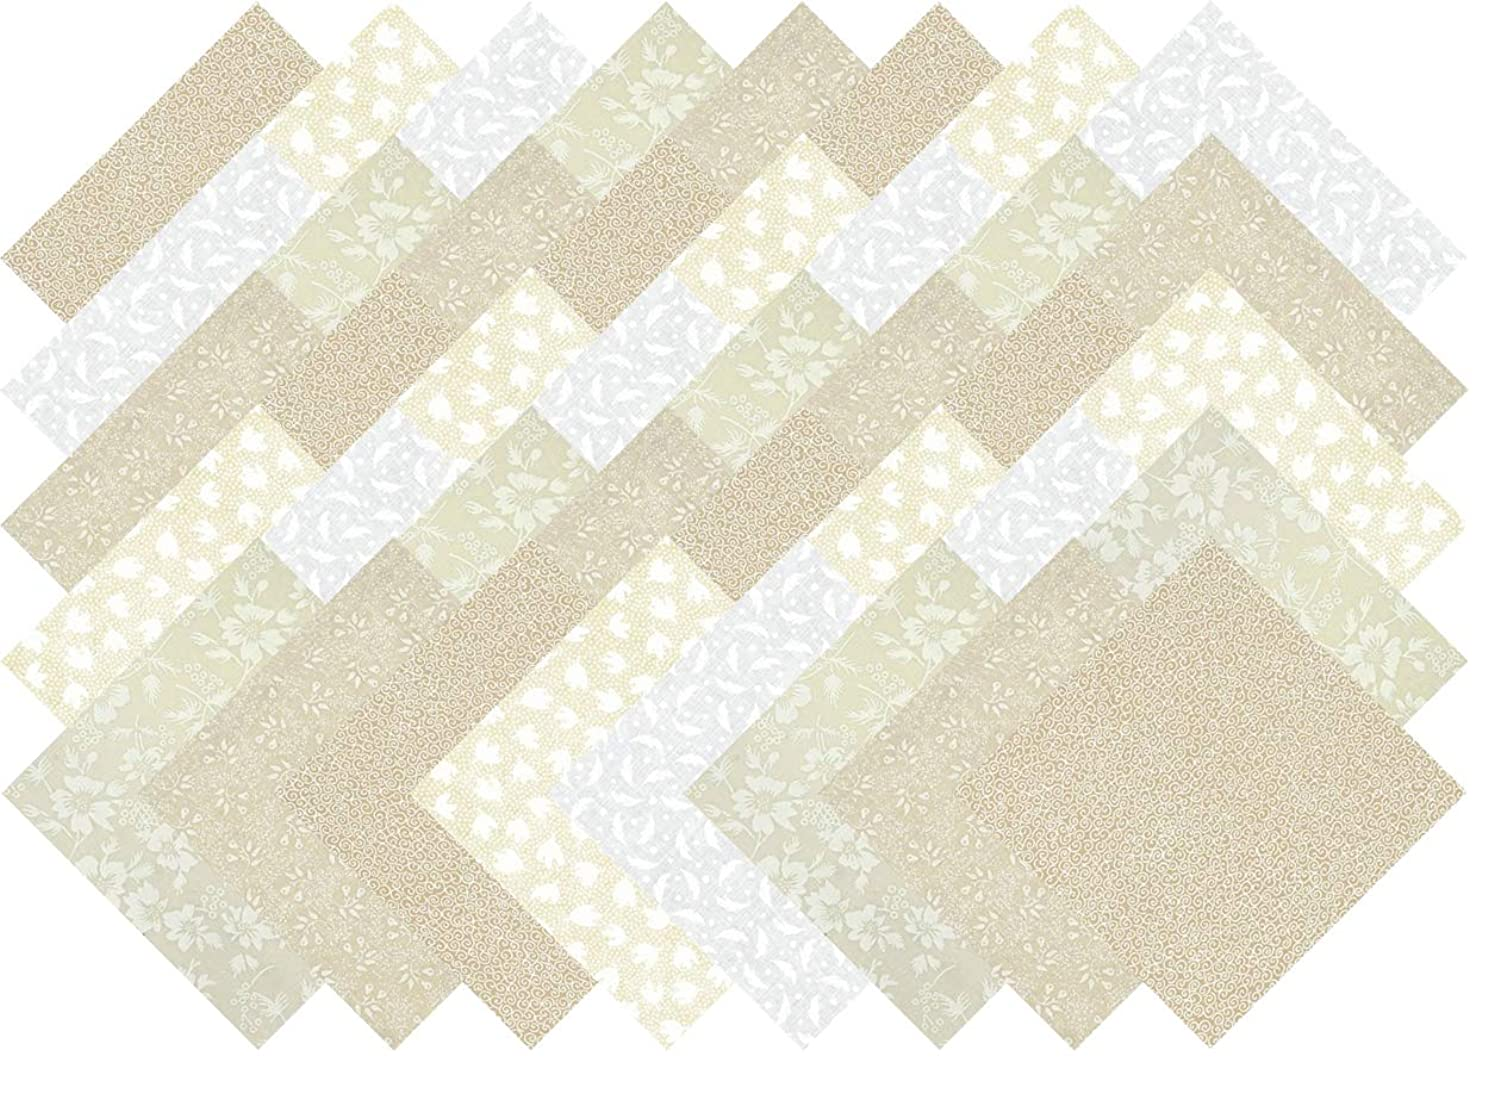 Tone on Tone Collection 40 Precut 5-inch Quilting Fabric Squares Charm Pack